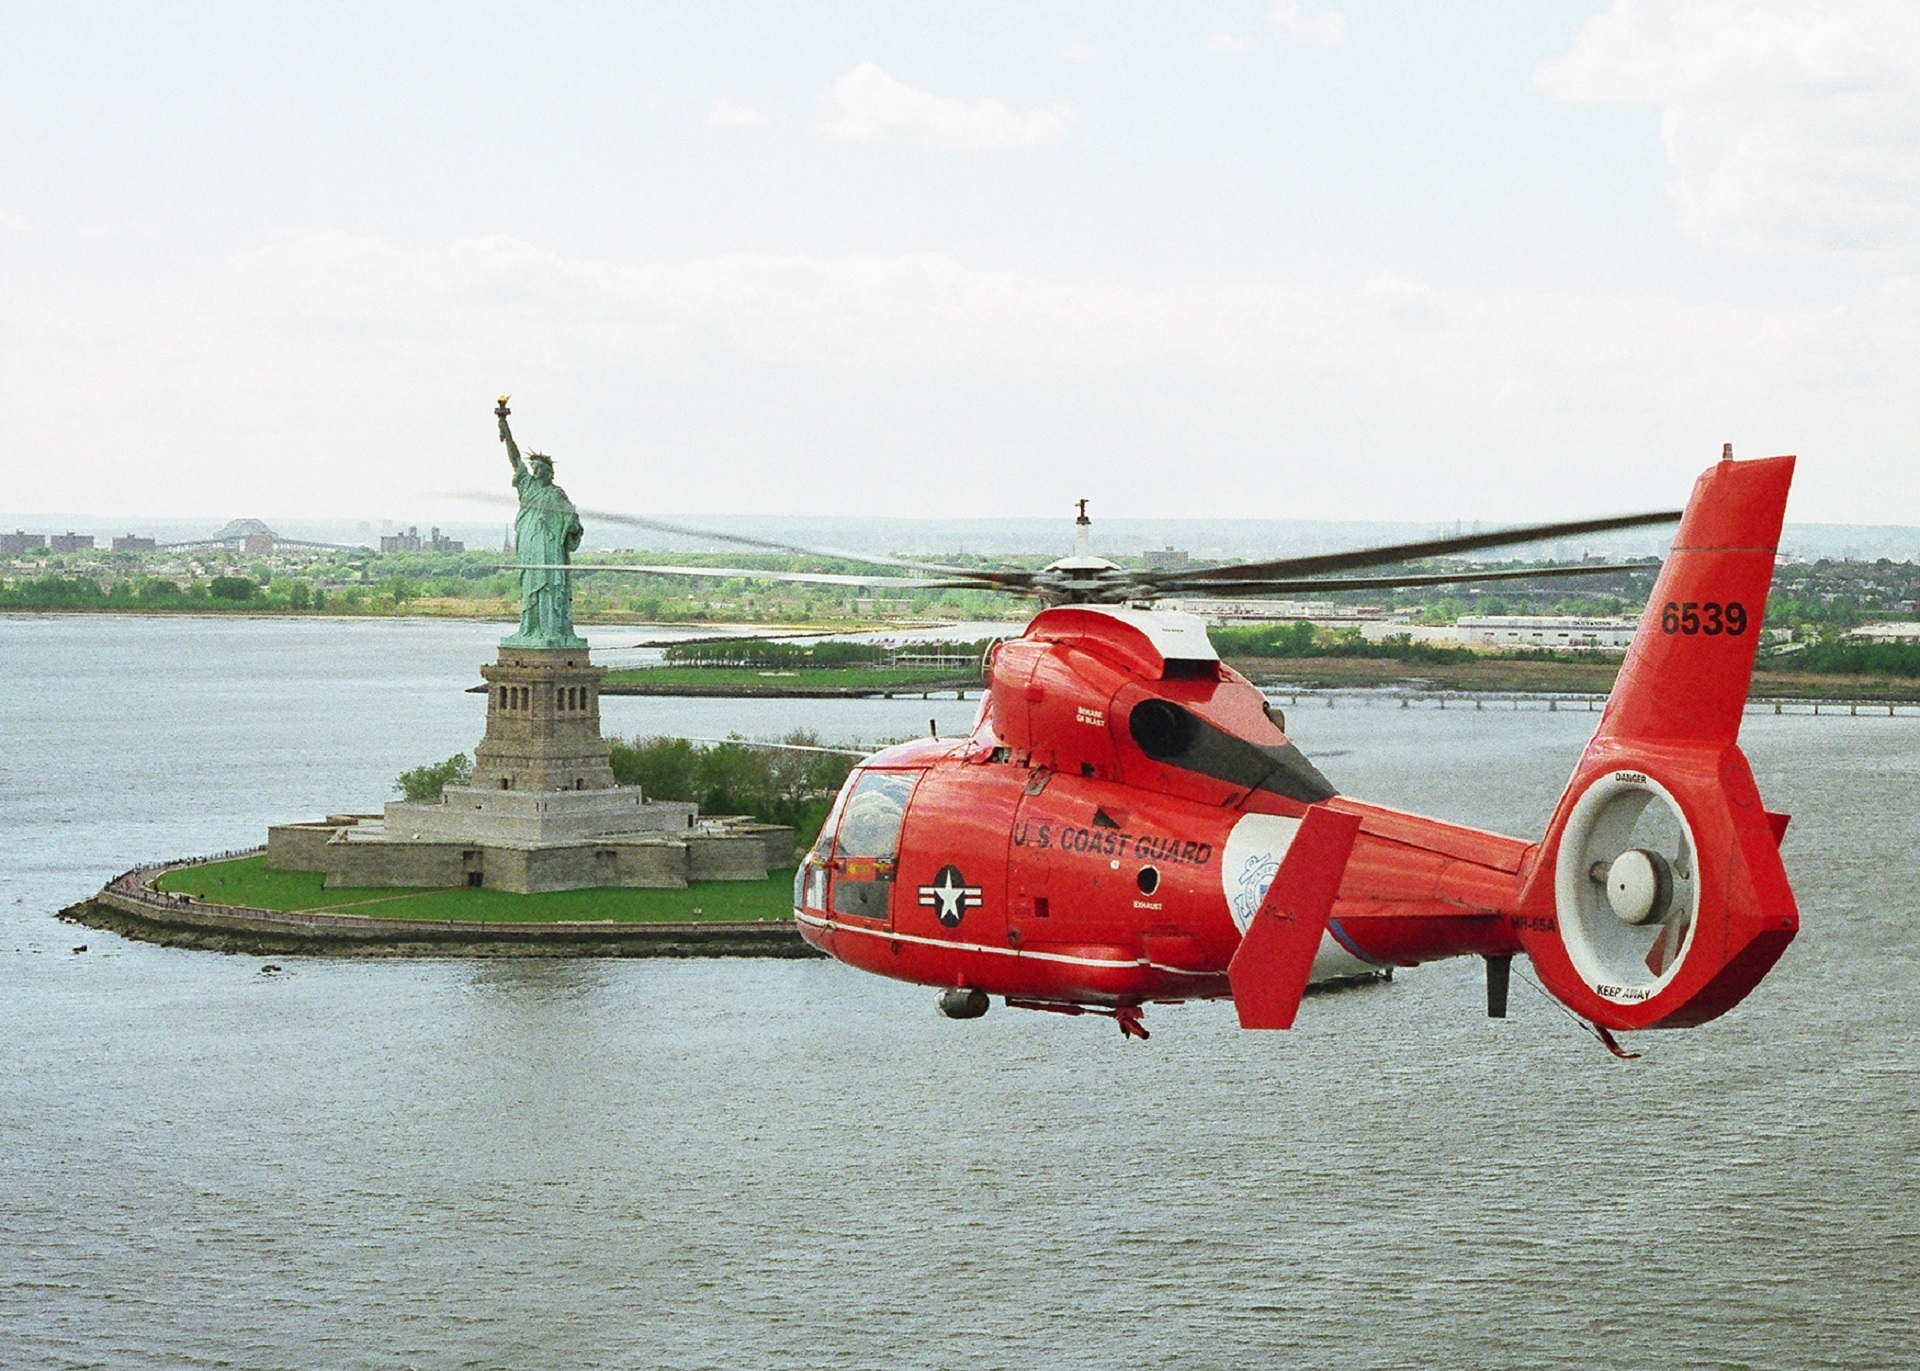 US Coast Guard Helicopter, Coast, Fig, Figure, Flying, HQ Photo